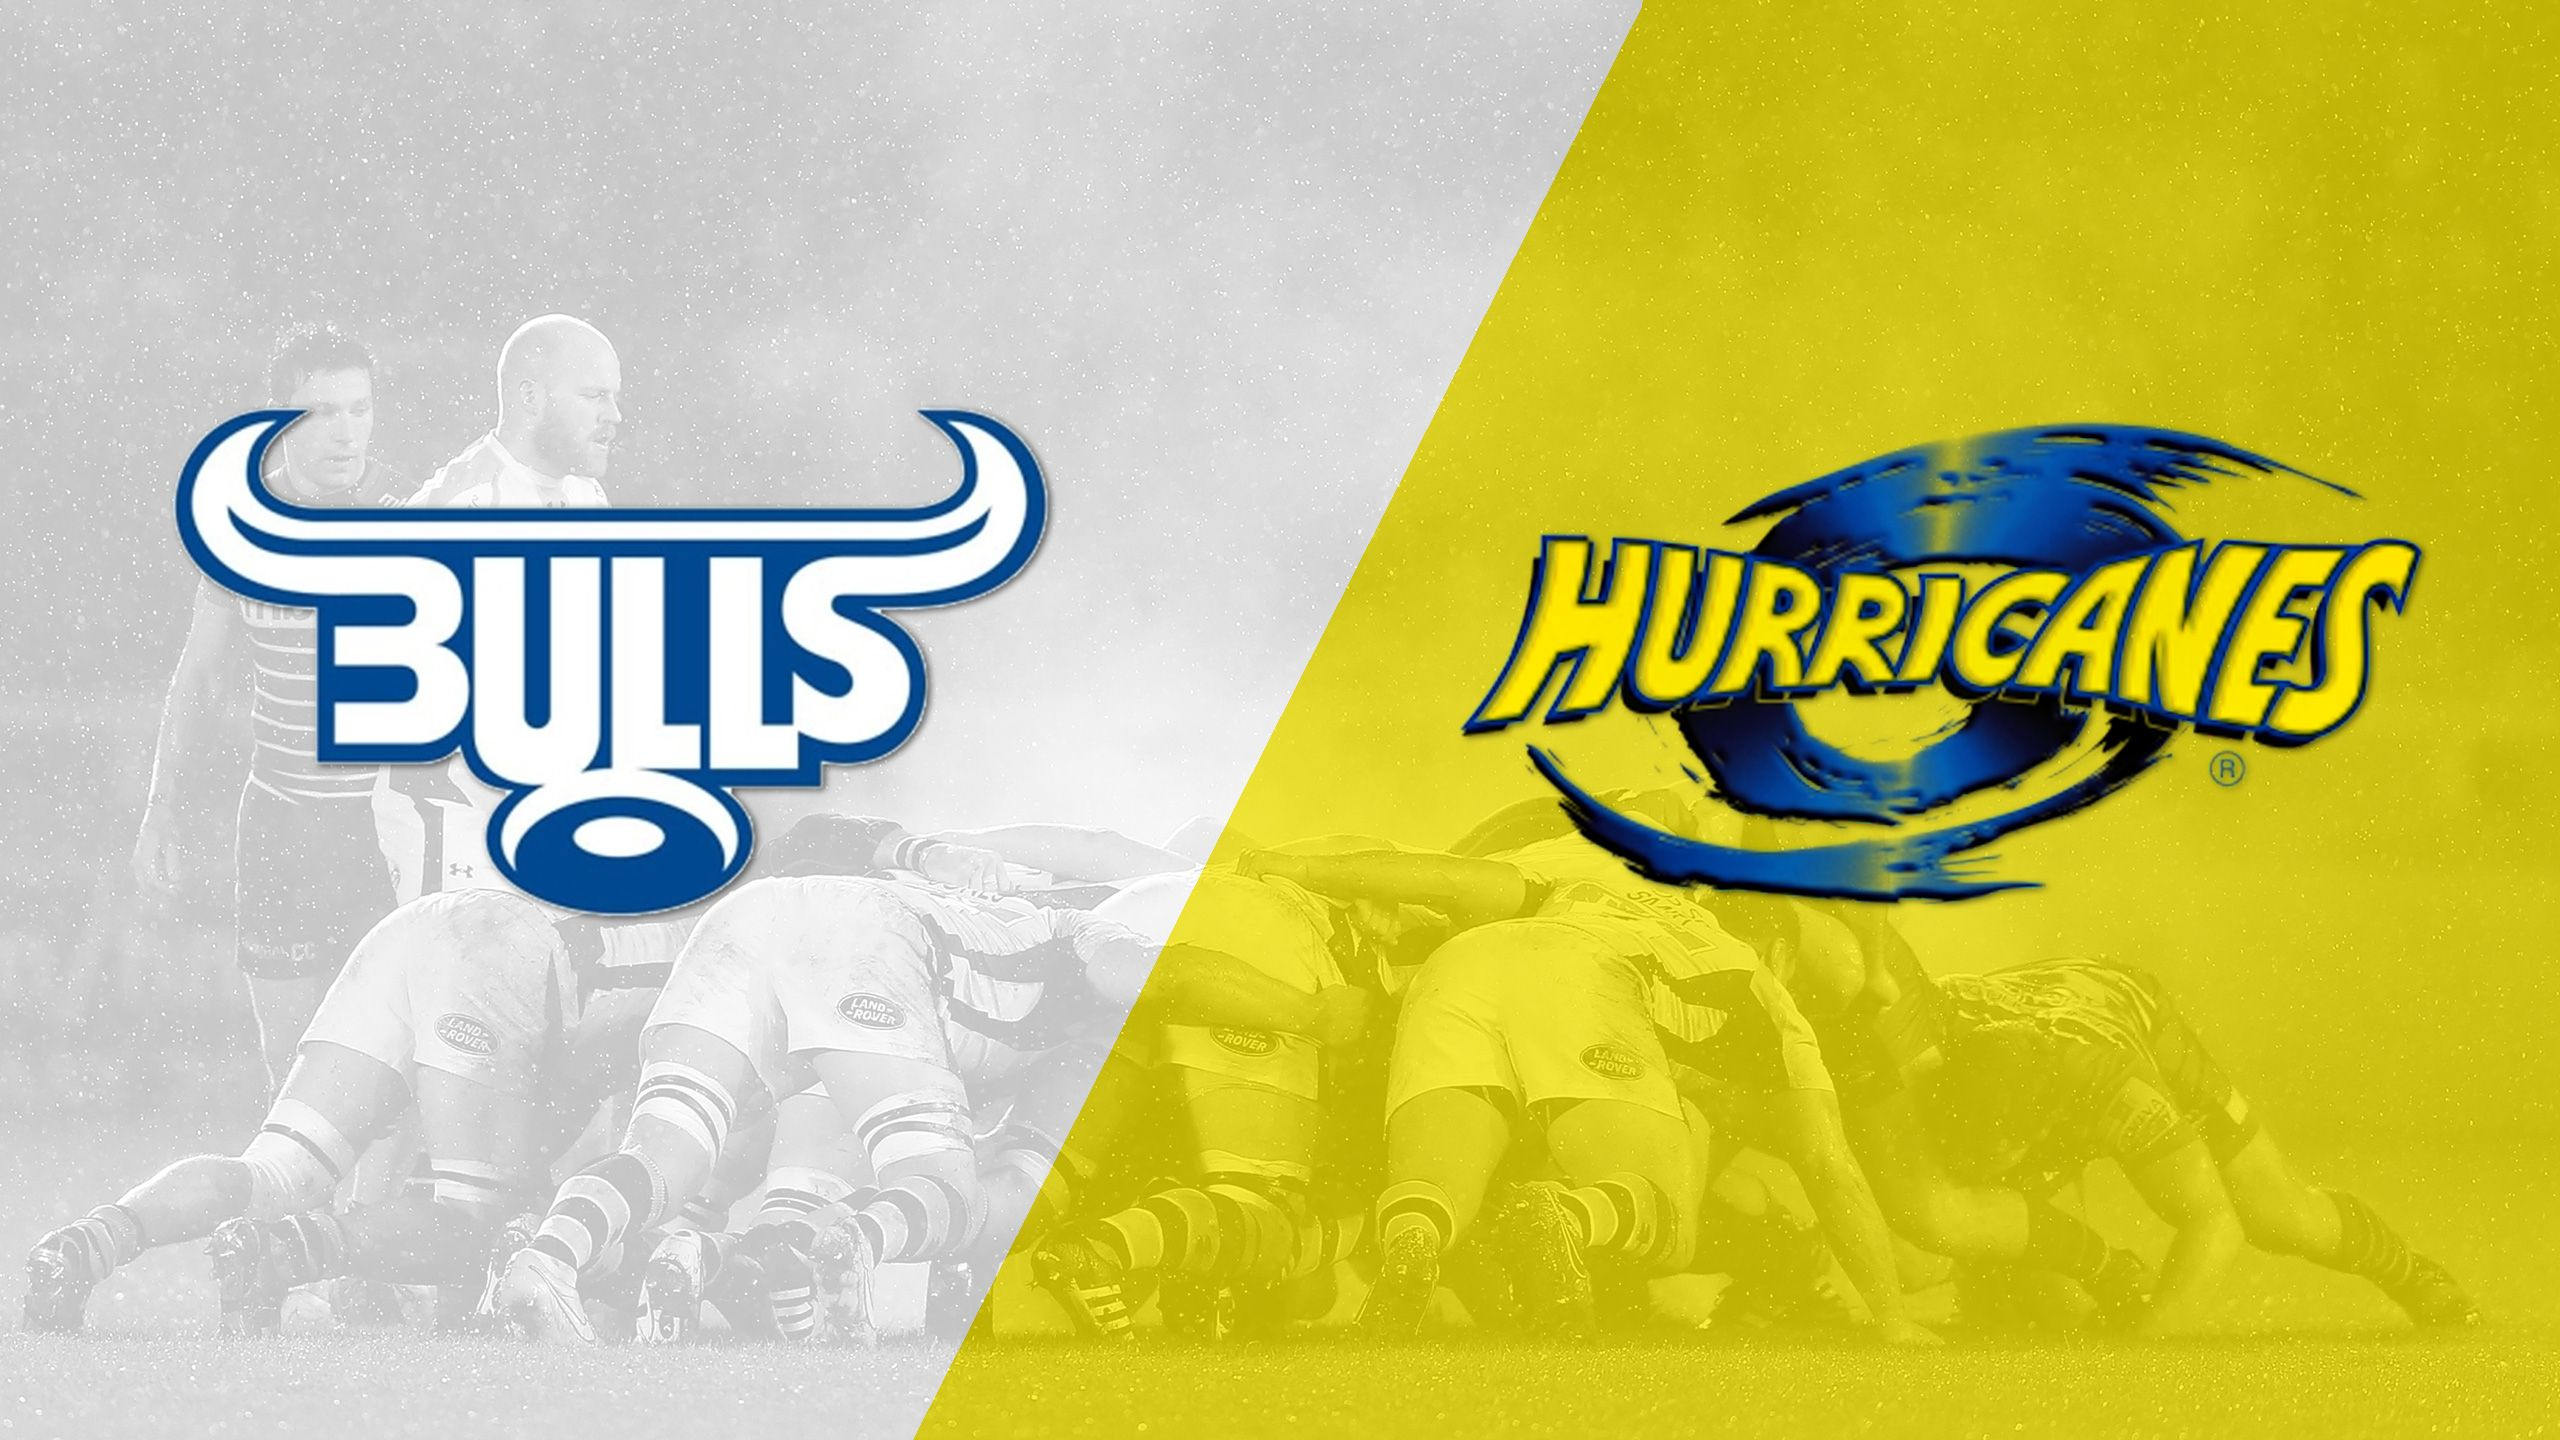 Bulls vs. Hurricanes (Round 2) (Super Rugby)